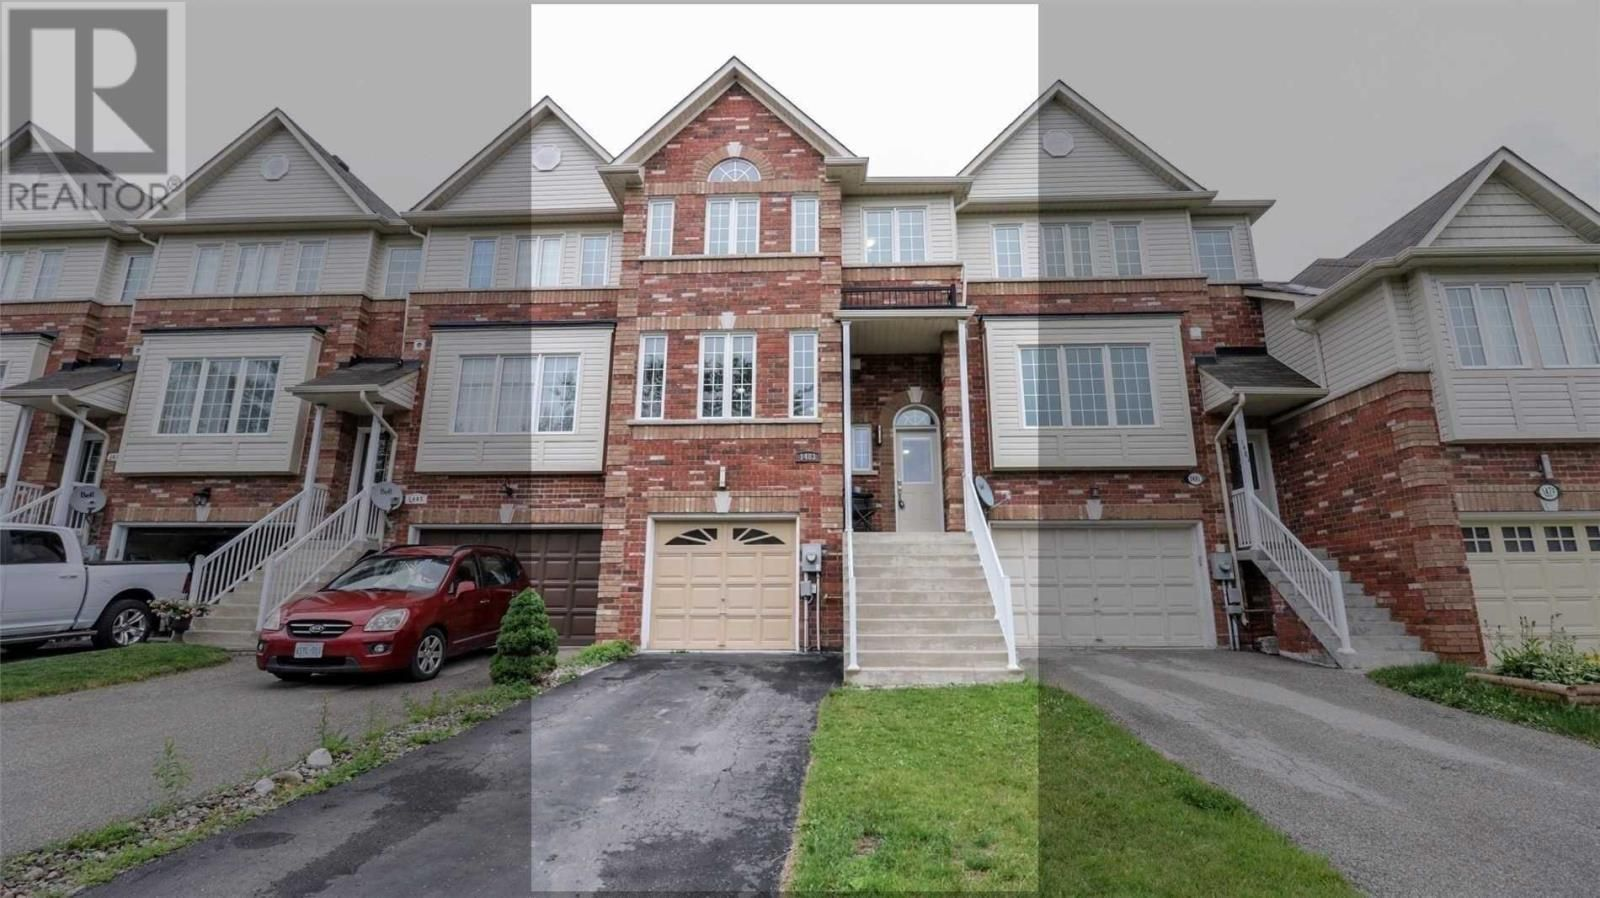 Main Photo: 1483 CERESINO CRES in Innisfil: House for rent : MLS®# N5343433